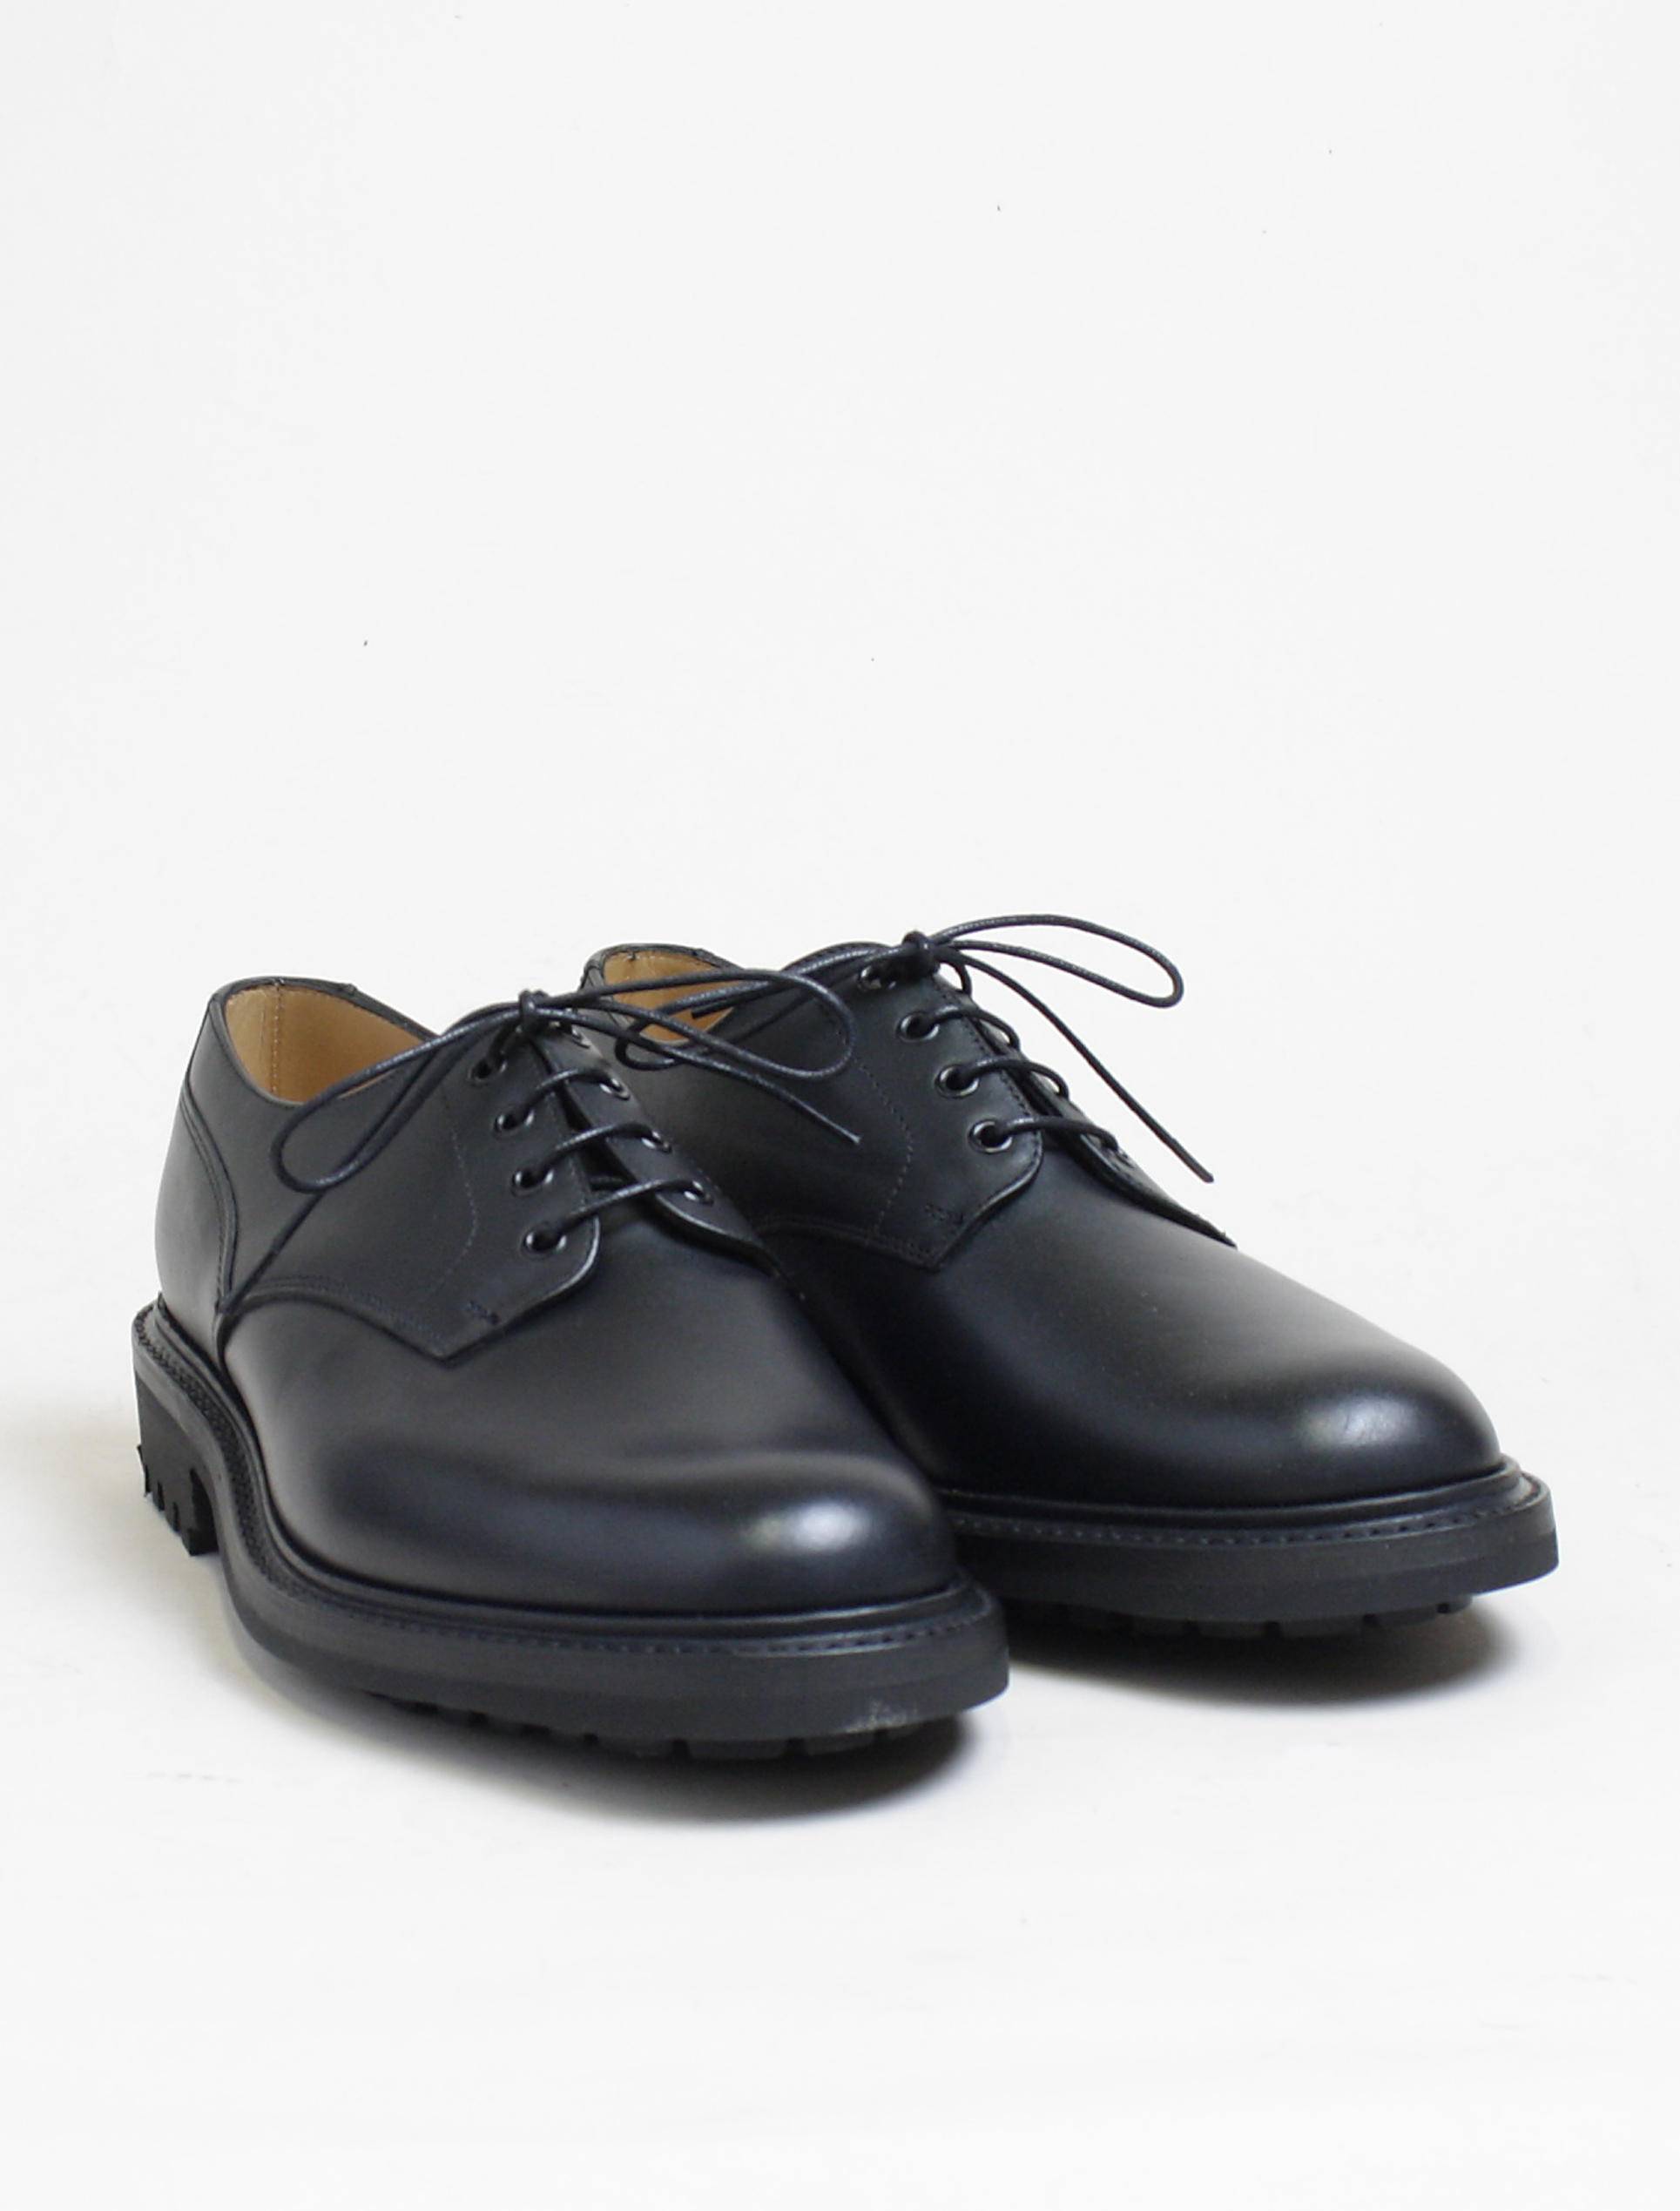 Sanders 9920 derby shoes black calf commando paio